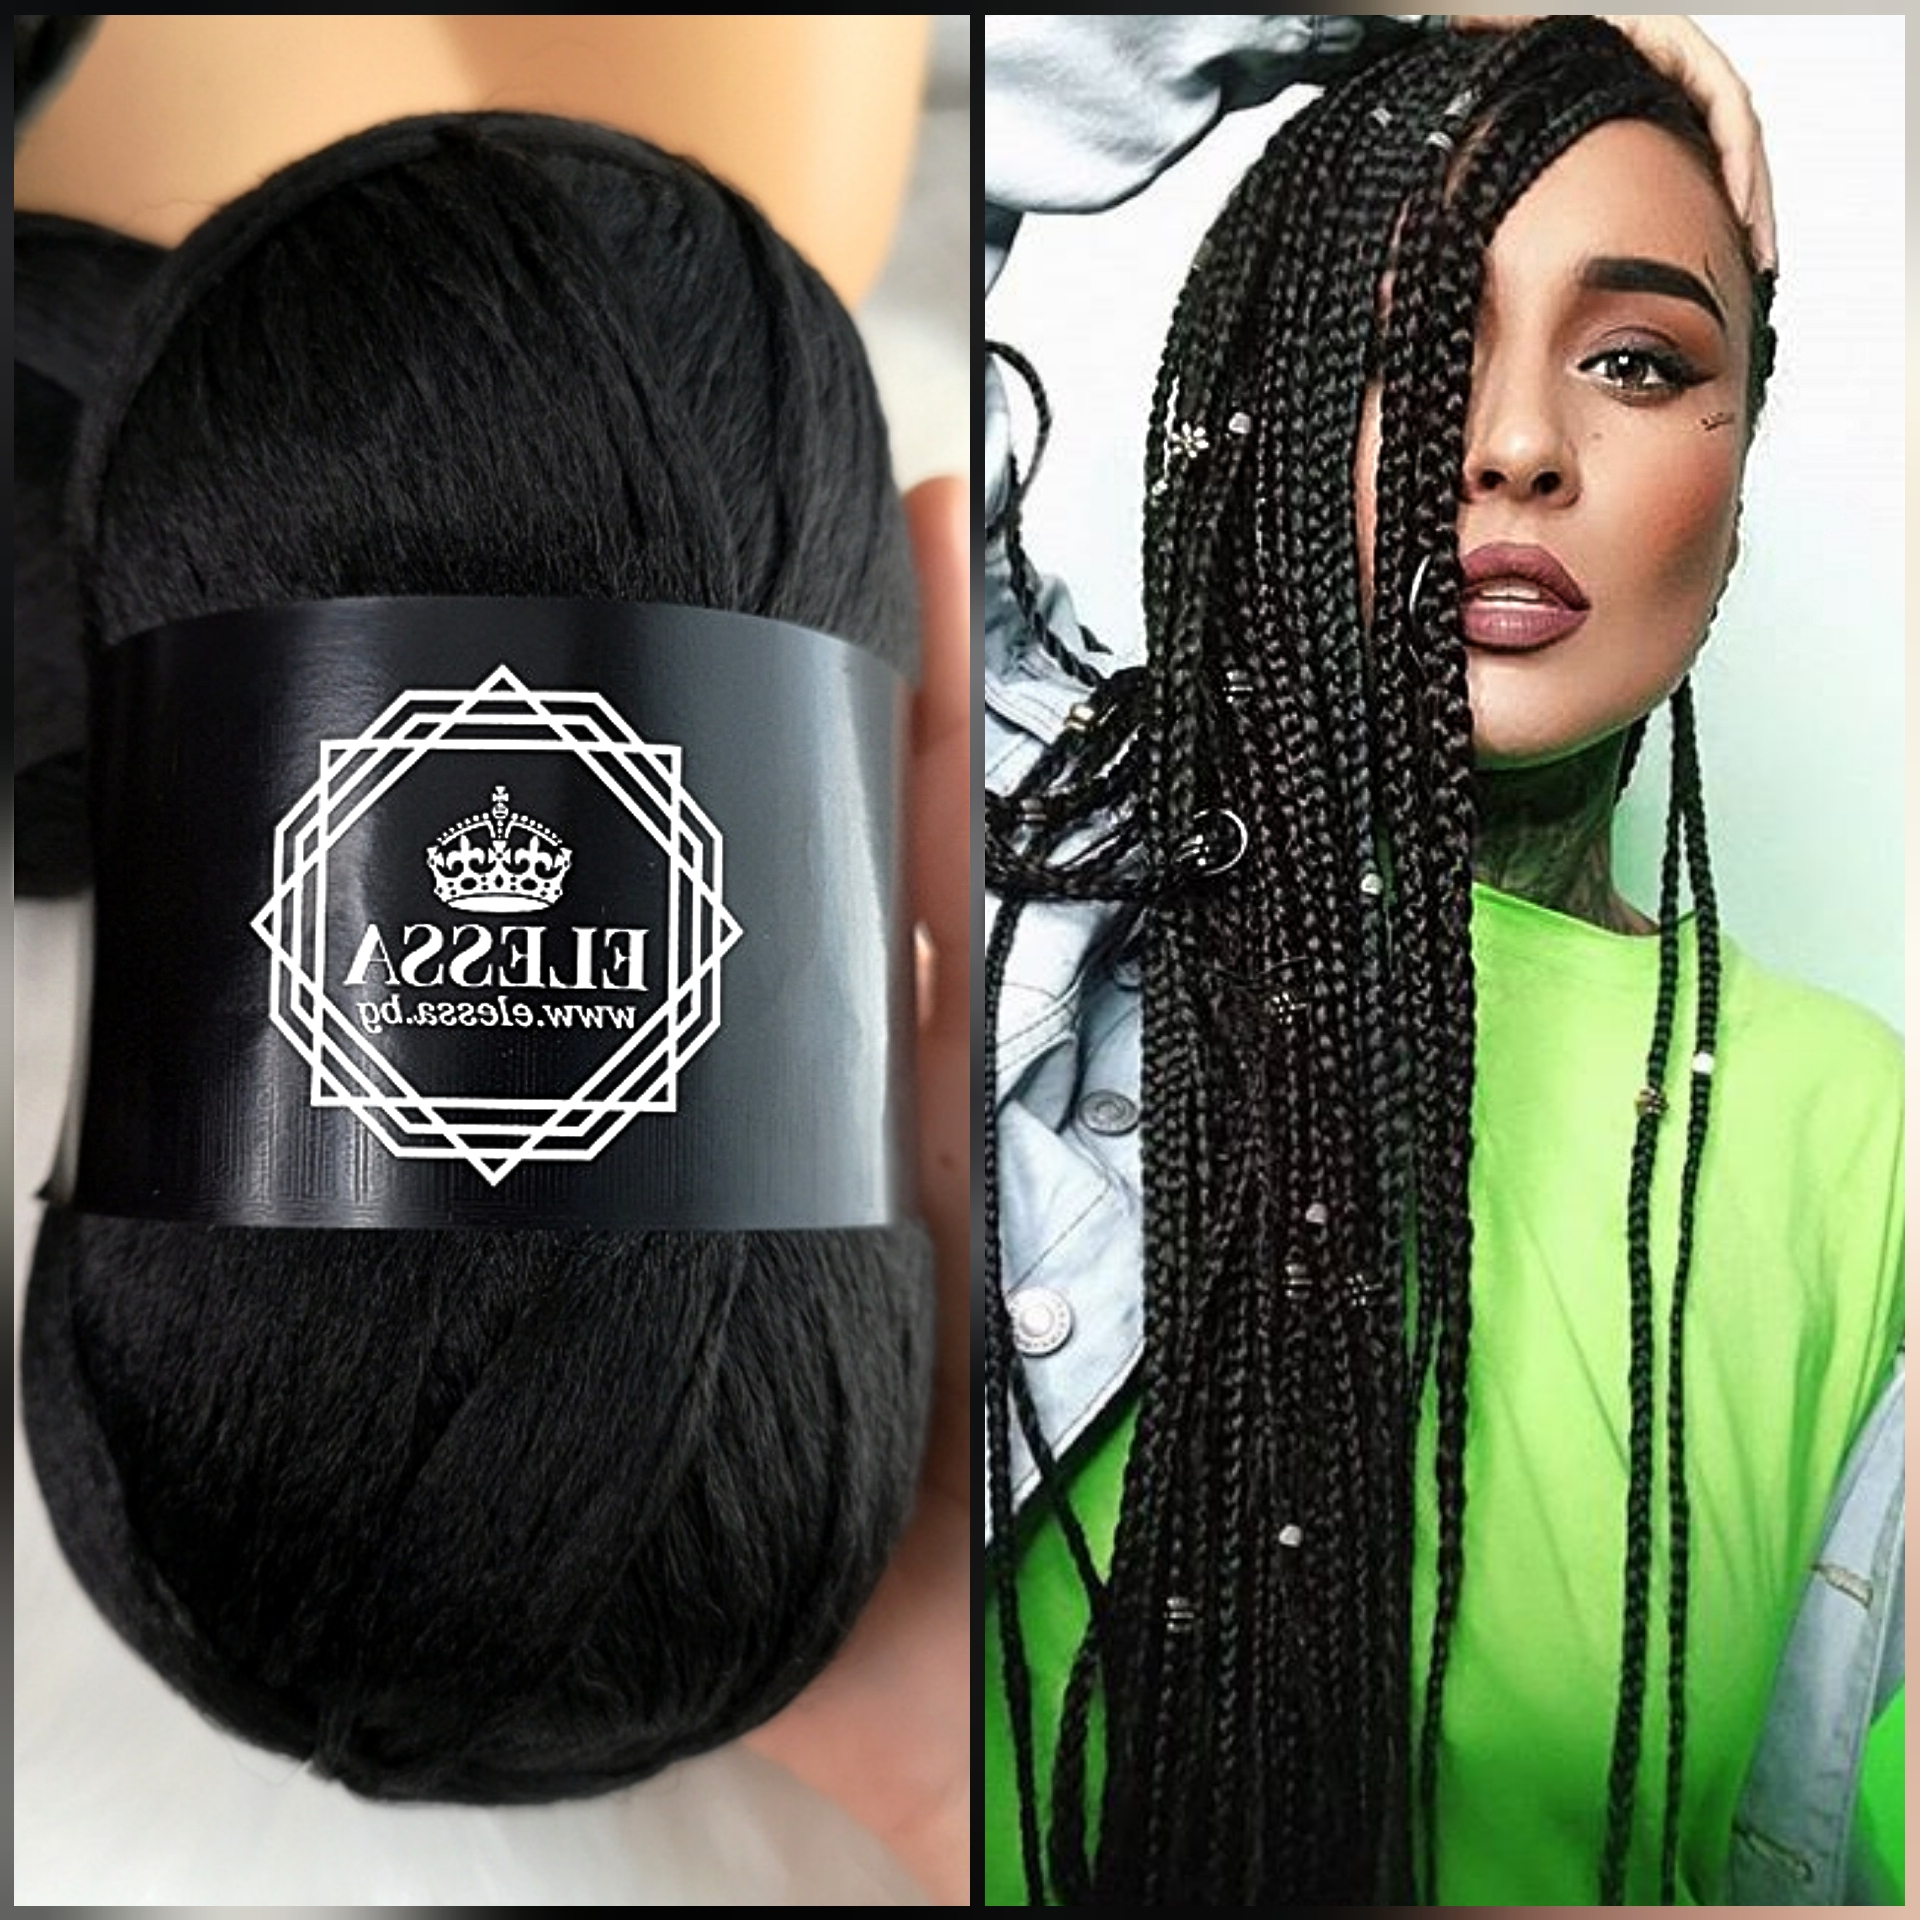 Widely Used Jumbo Twists Yarn Braid Hairstyles In Brazilian Yarn For Braids High Quality Acrylic Wool For Hair (View 18 of 20)